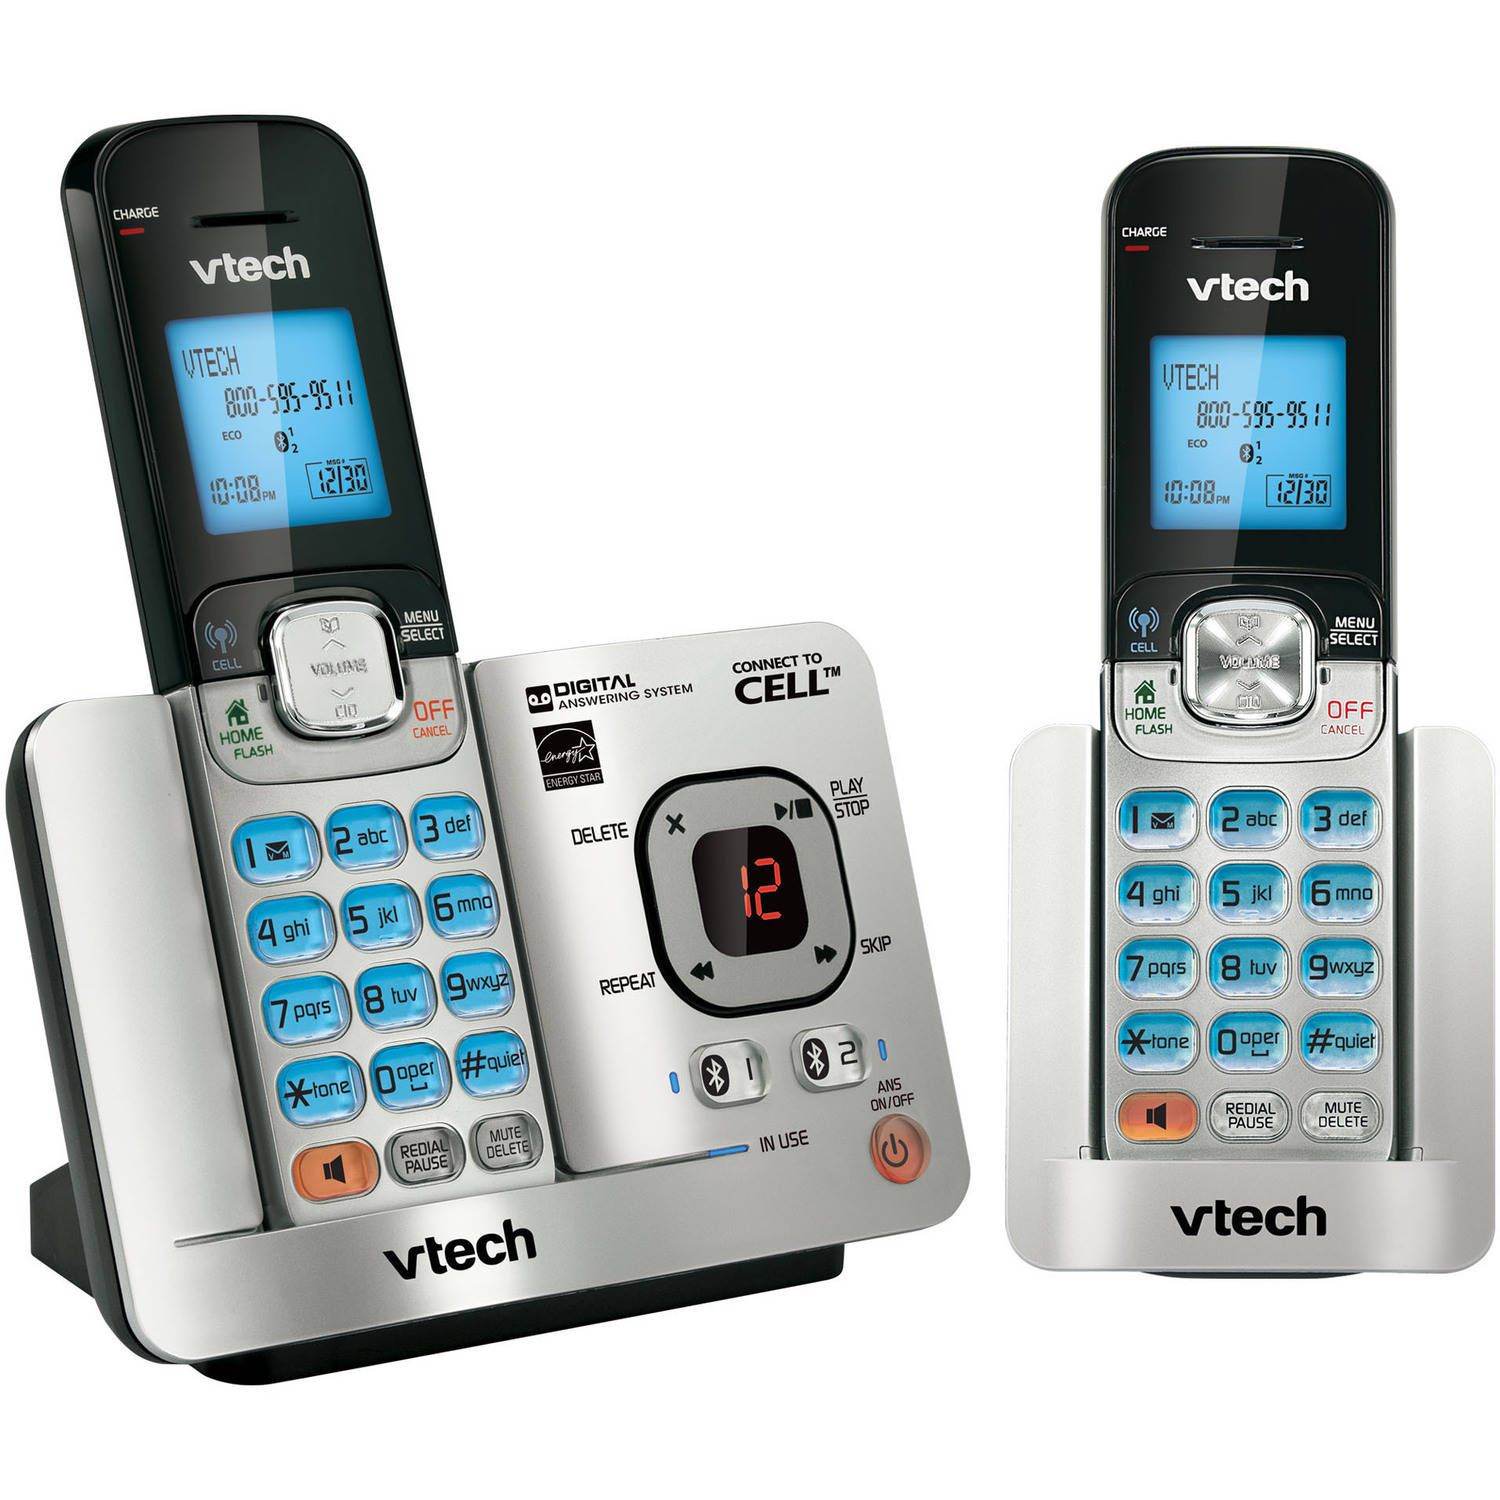 VTech DS6521-2 DECT 6.0 Cordless Phone System with Connect to Cell and 2 Handsets